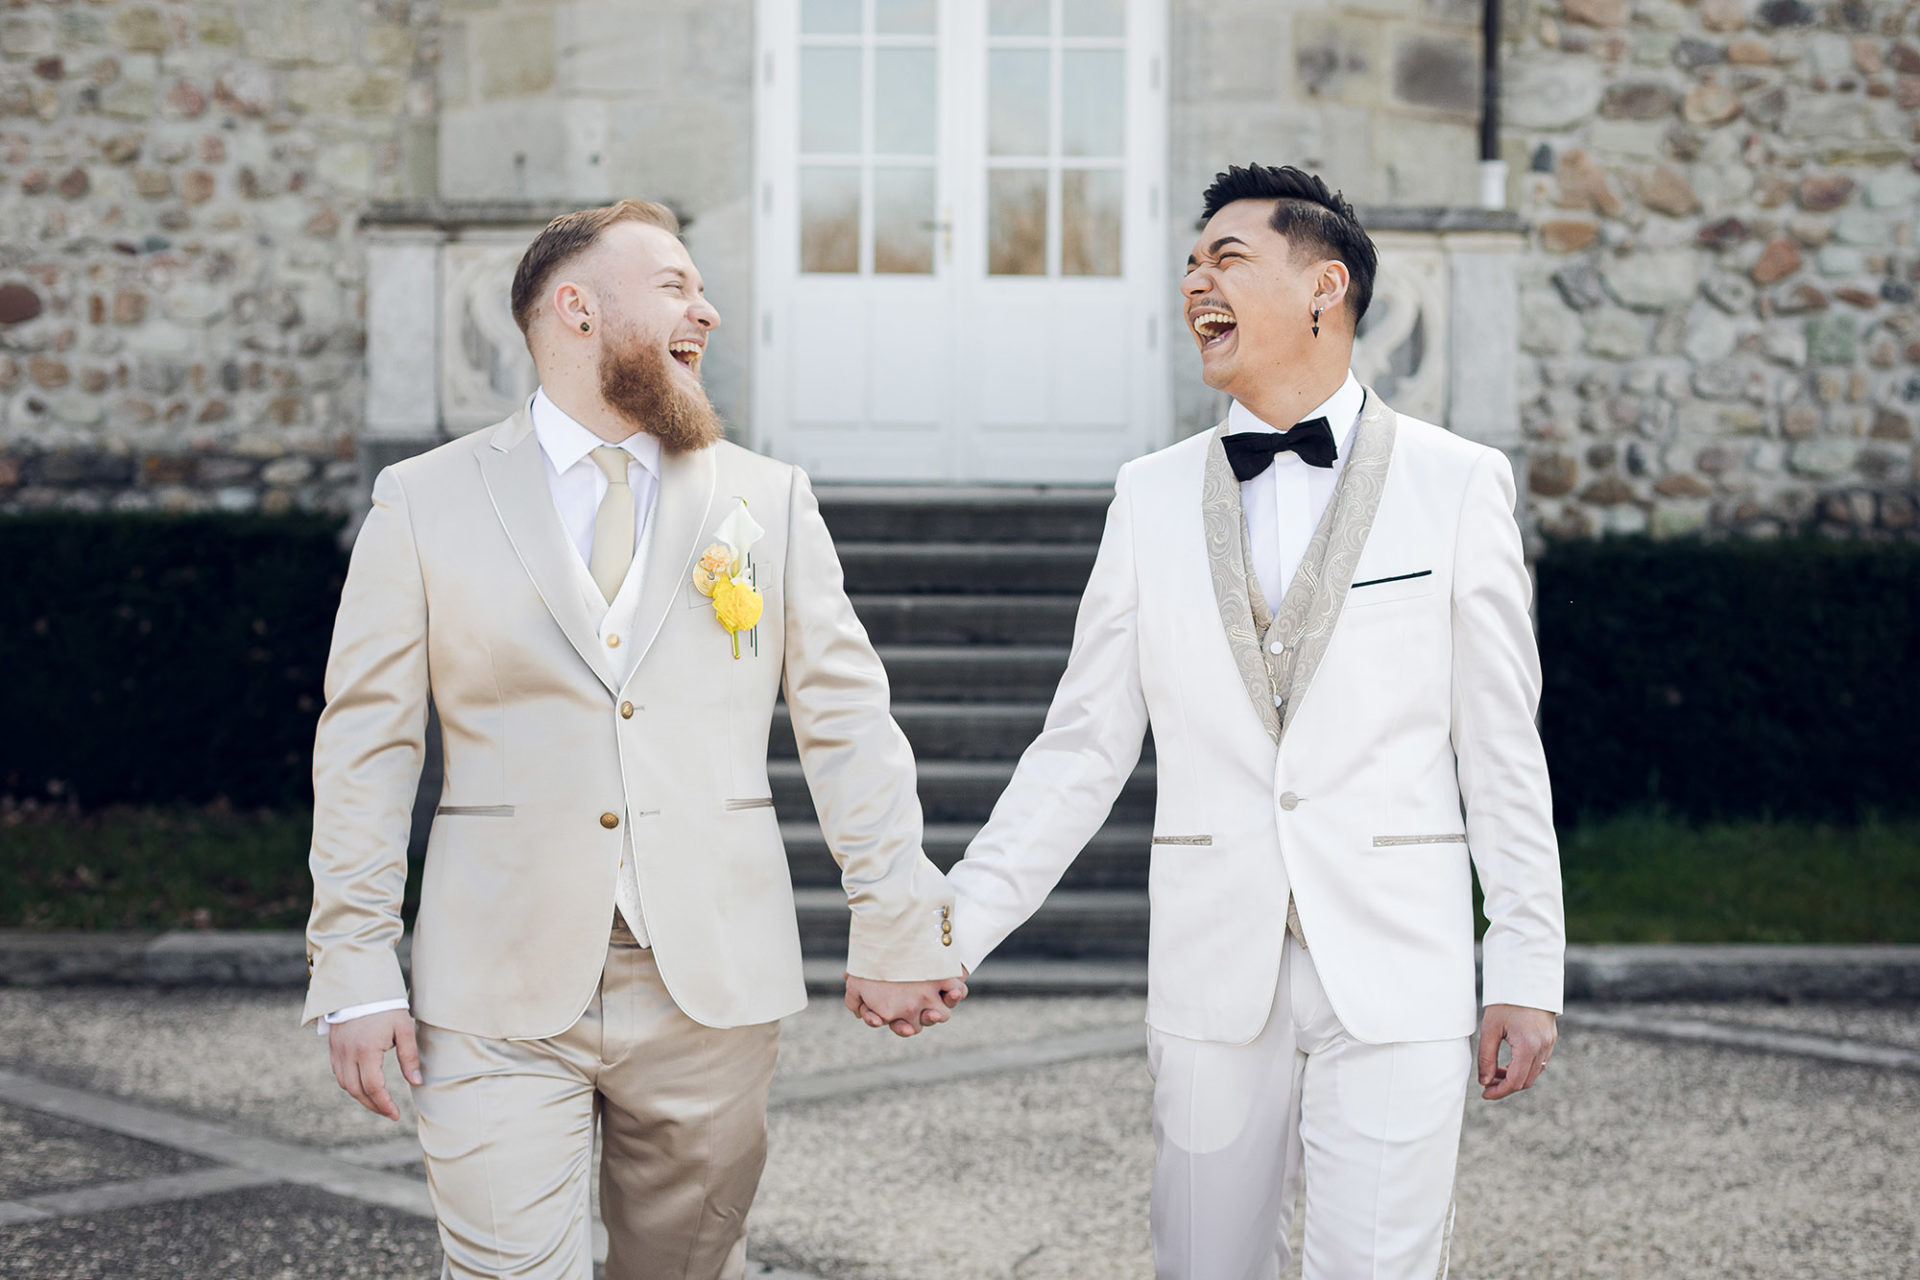 photographe-mariage-saint-etienne-lyon-auvergne-rhone-alpes-wedding-photographer-elise-julliard-coktail-photos-couple-chateau-andrezieu-boutheon-lgbt-gay